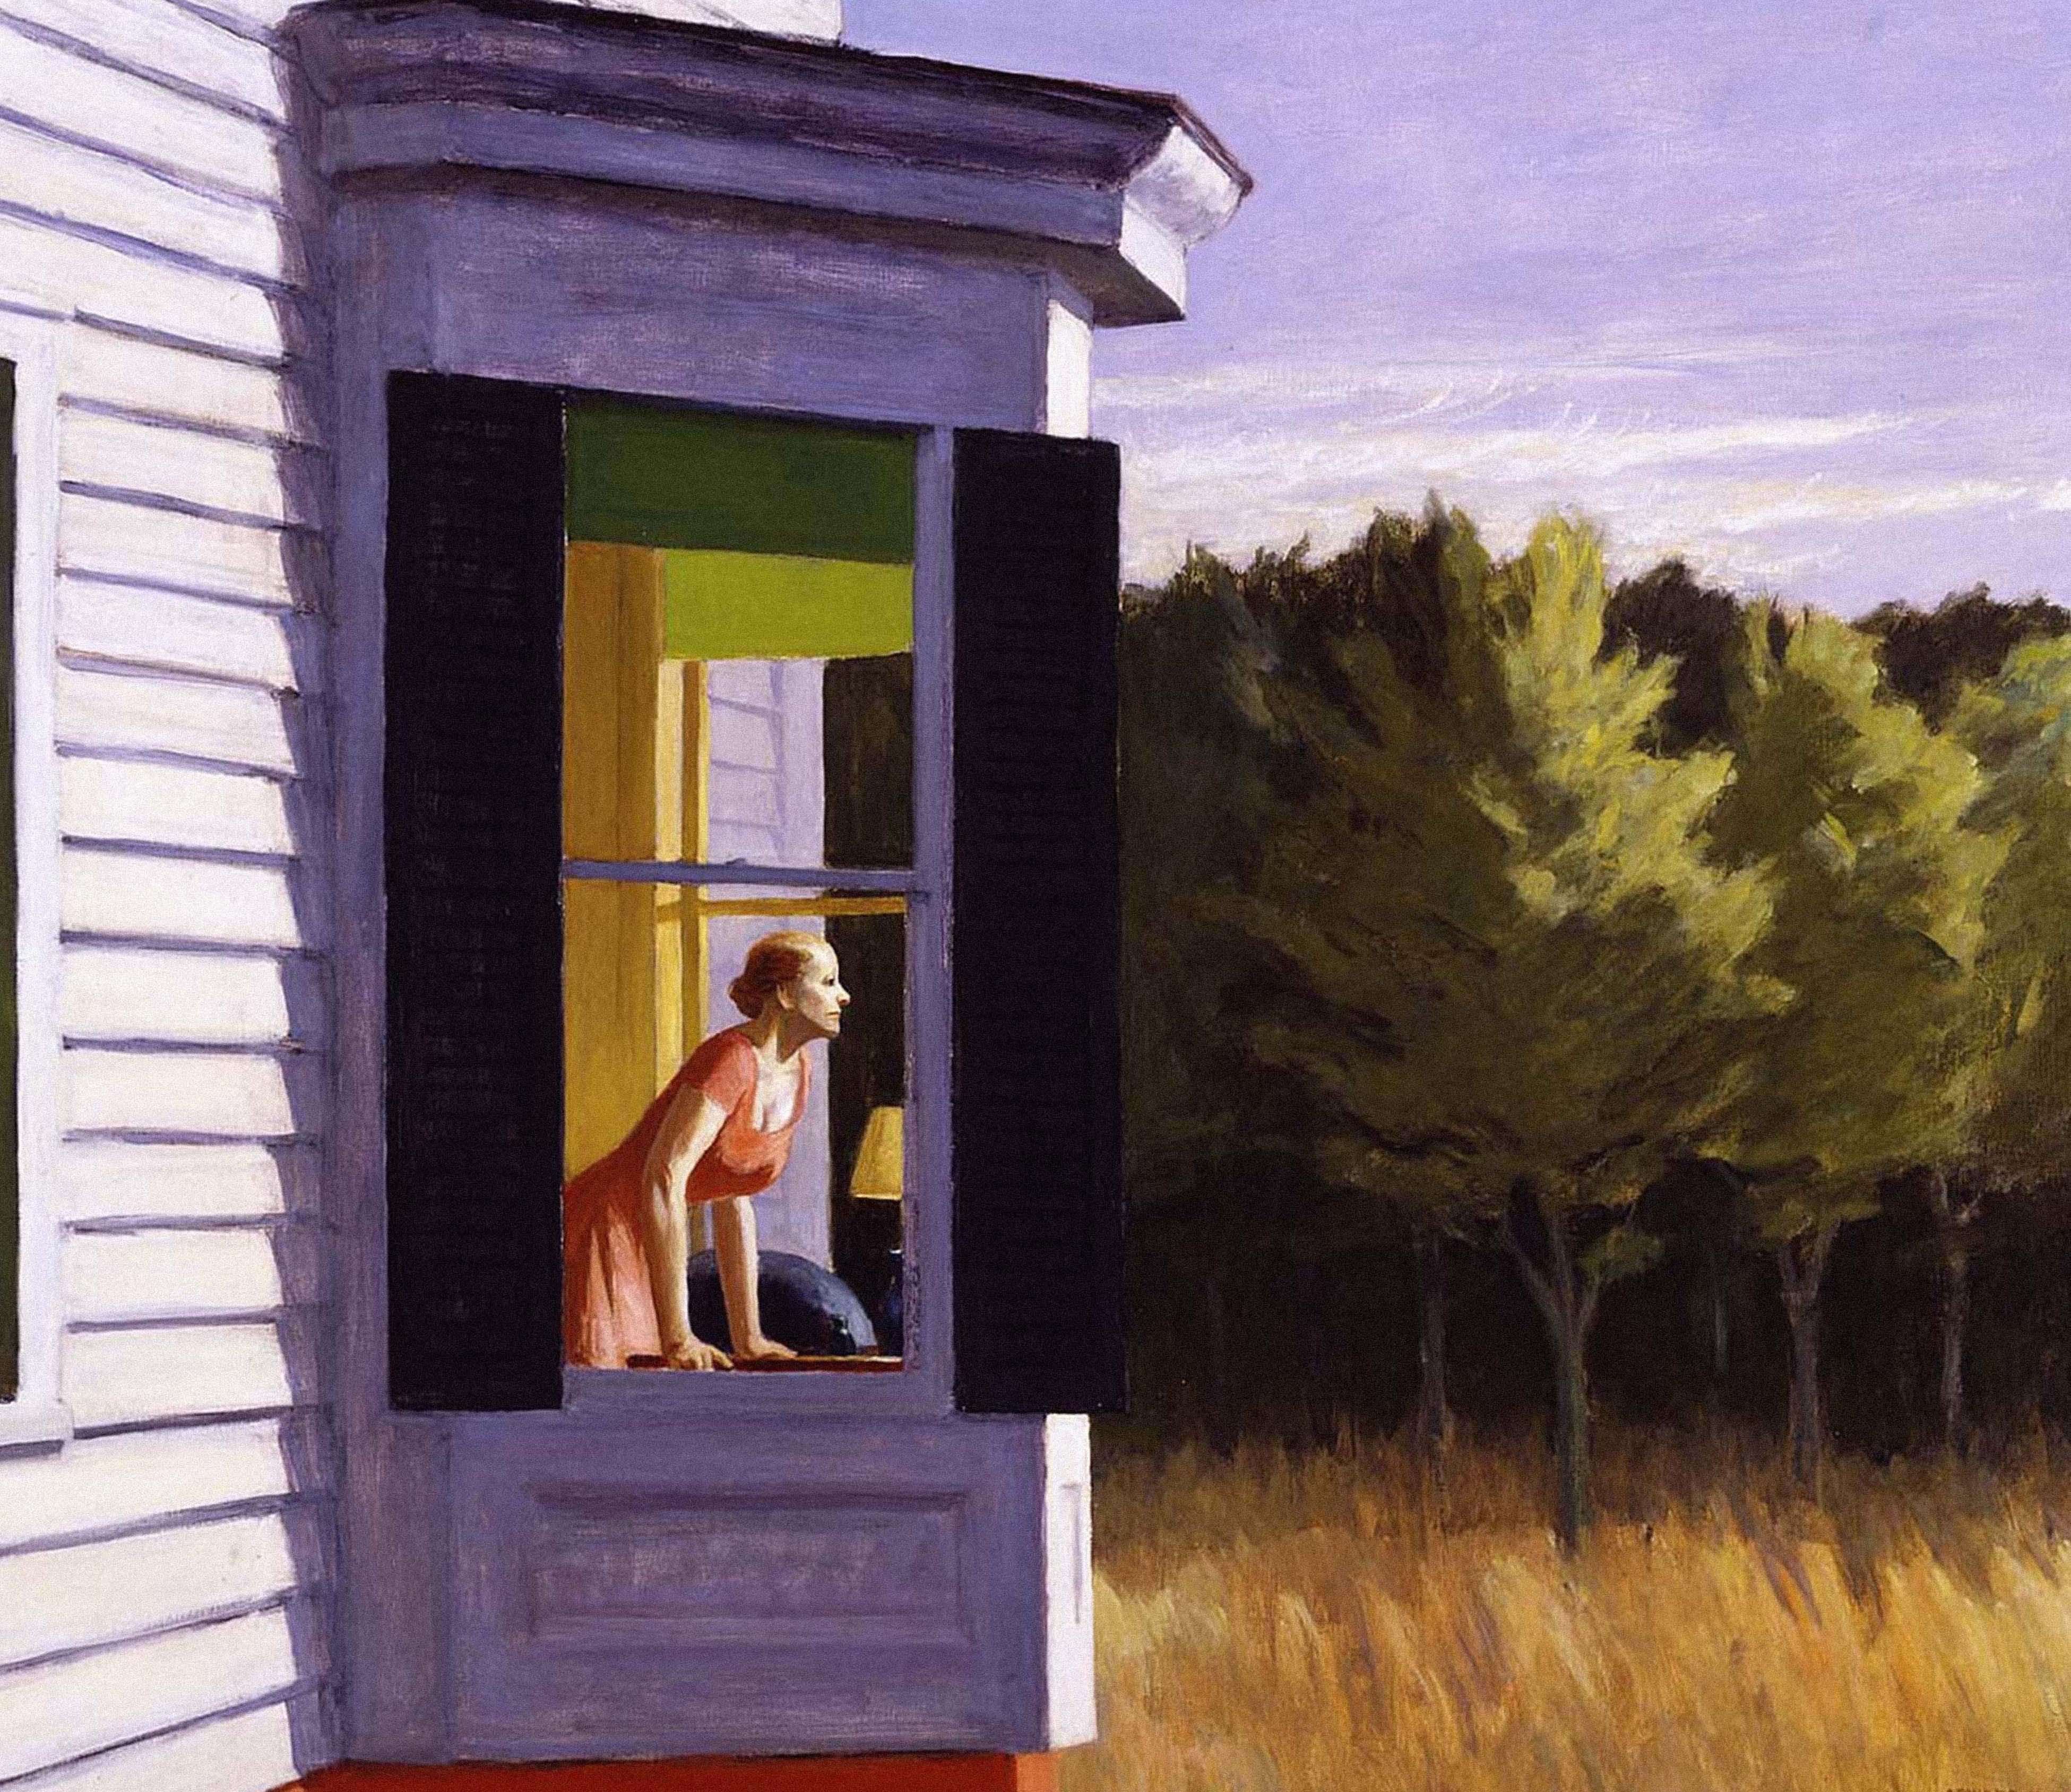 'We are all Edward Hopper paintings now': is he the artist of the coronavirus age?